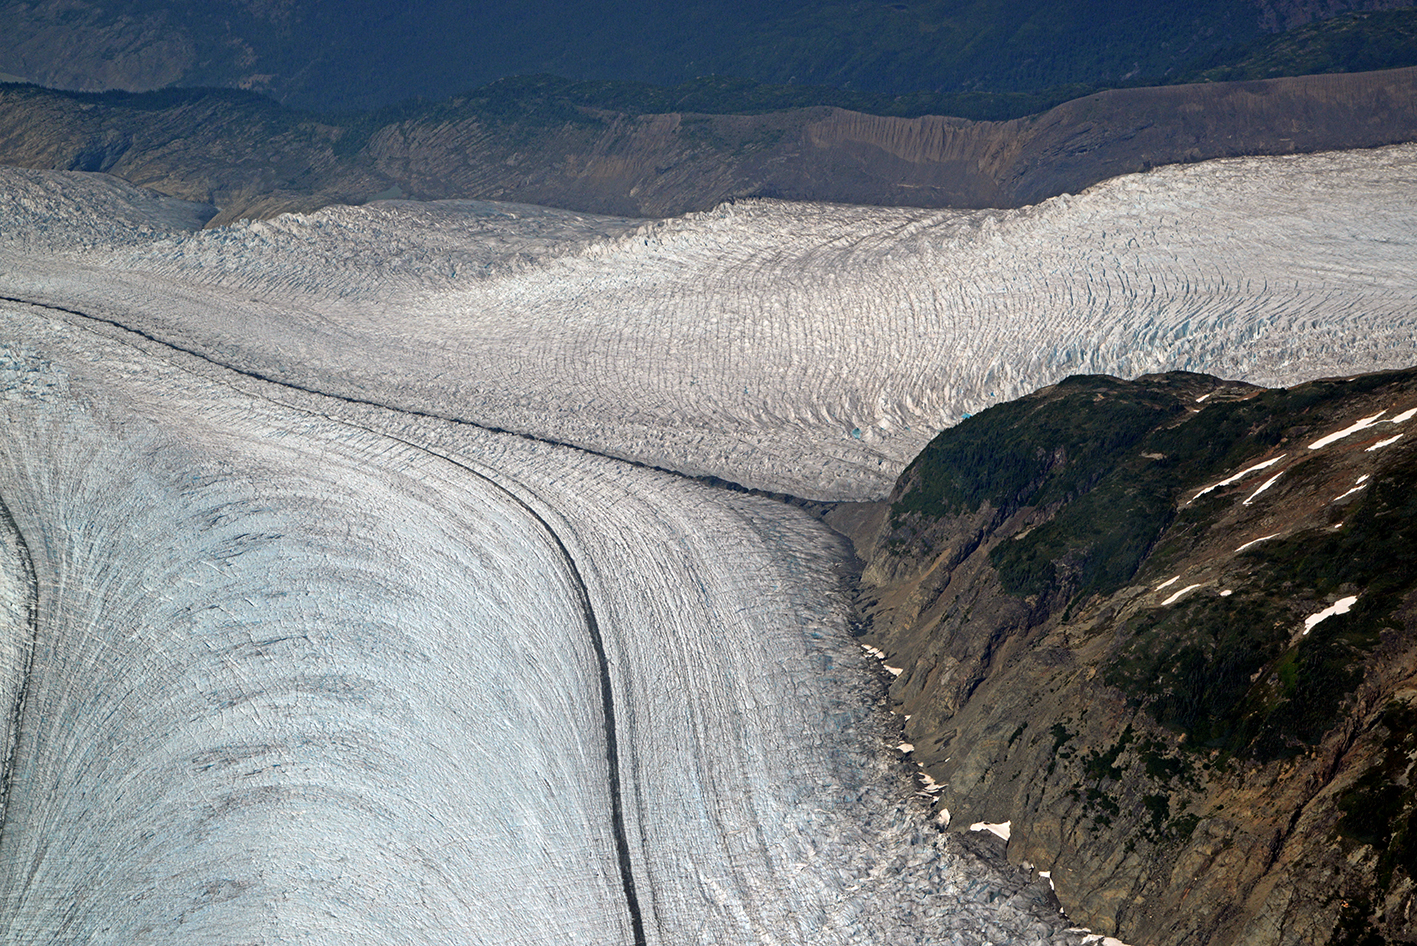 ogives_moraines_crevasses_DSC_9036